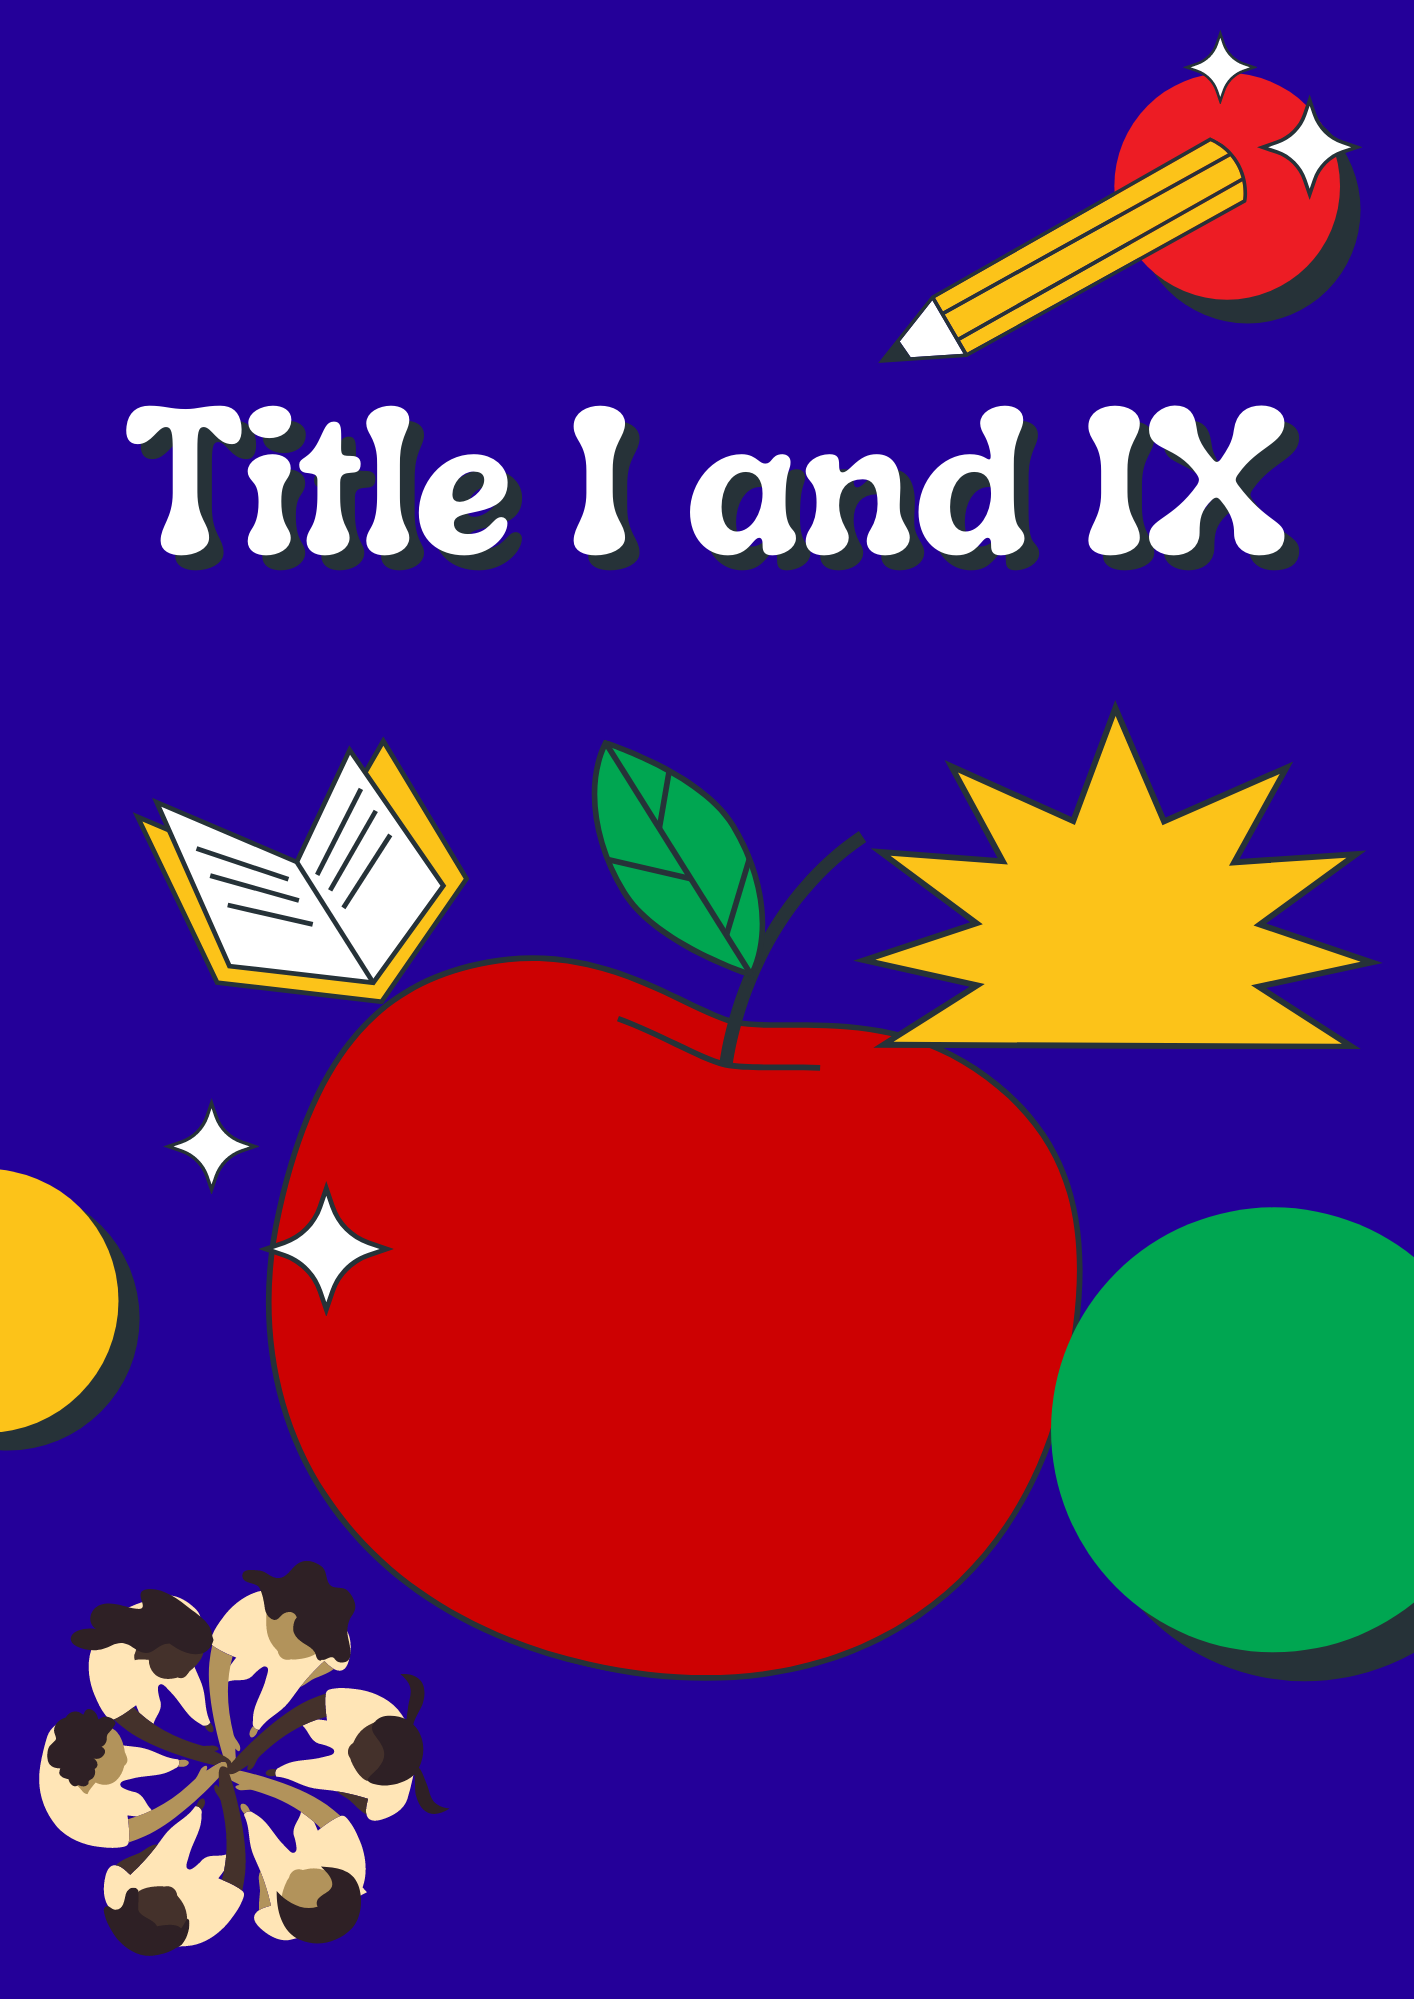 Title 1 and 9